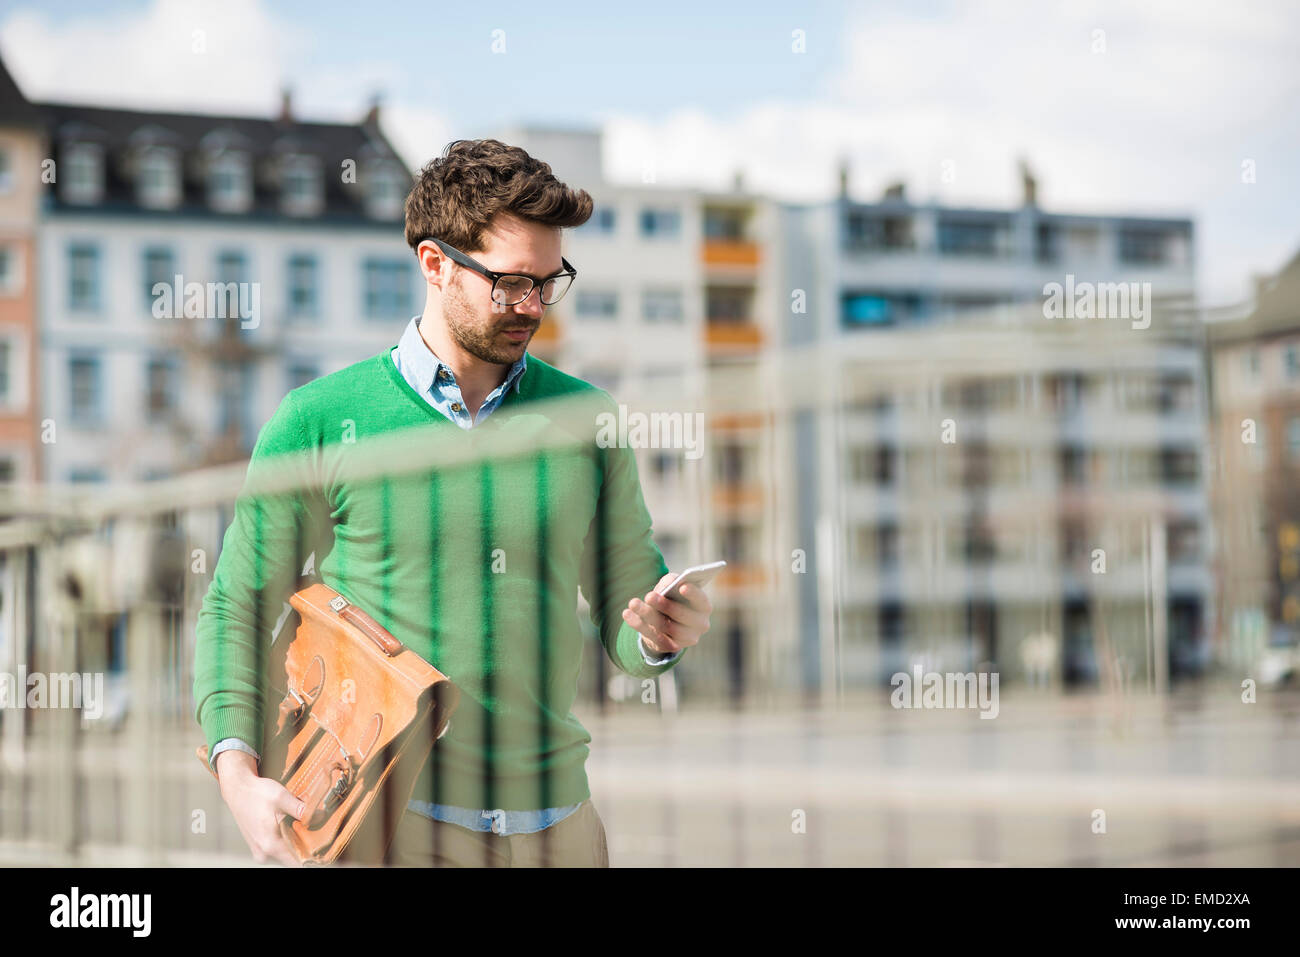 Dans l'homme chandail vert carrying briefcase, reading text message Photo Stock